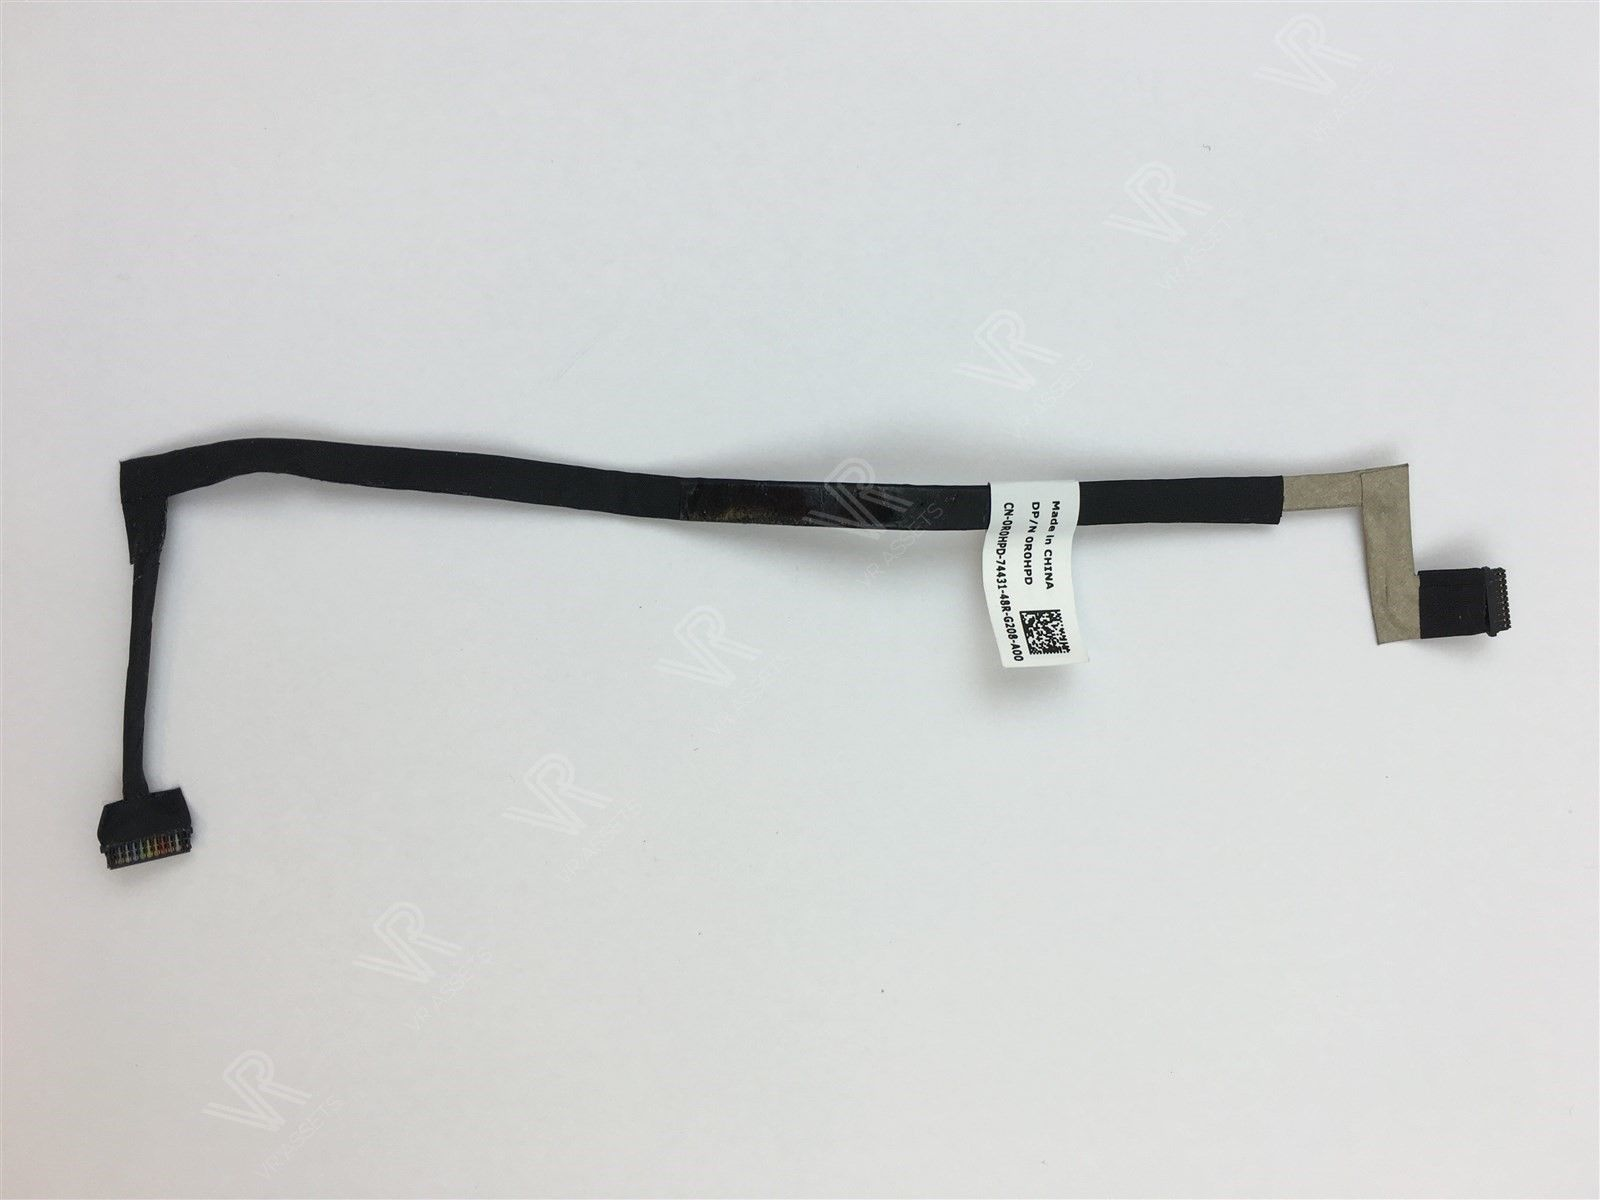 Genuine Dell XPS 18 1810 AIO Webcam Cable R0HPD 0R0HPD